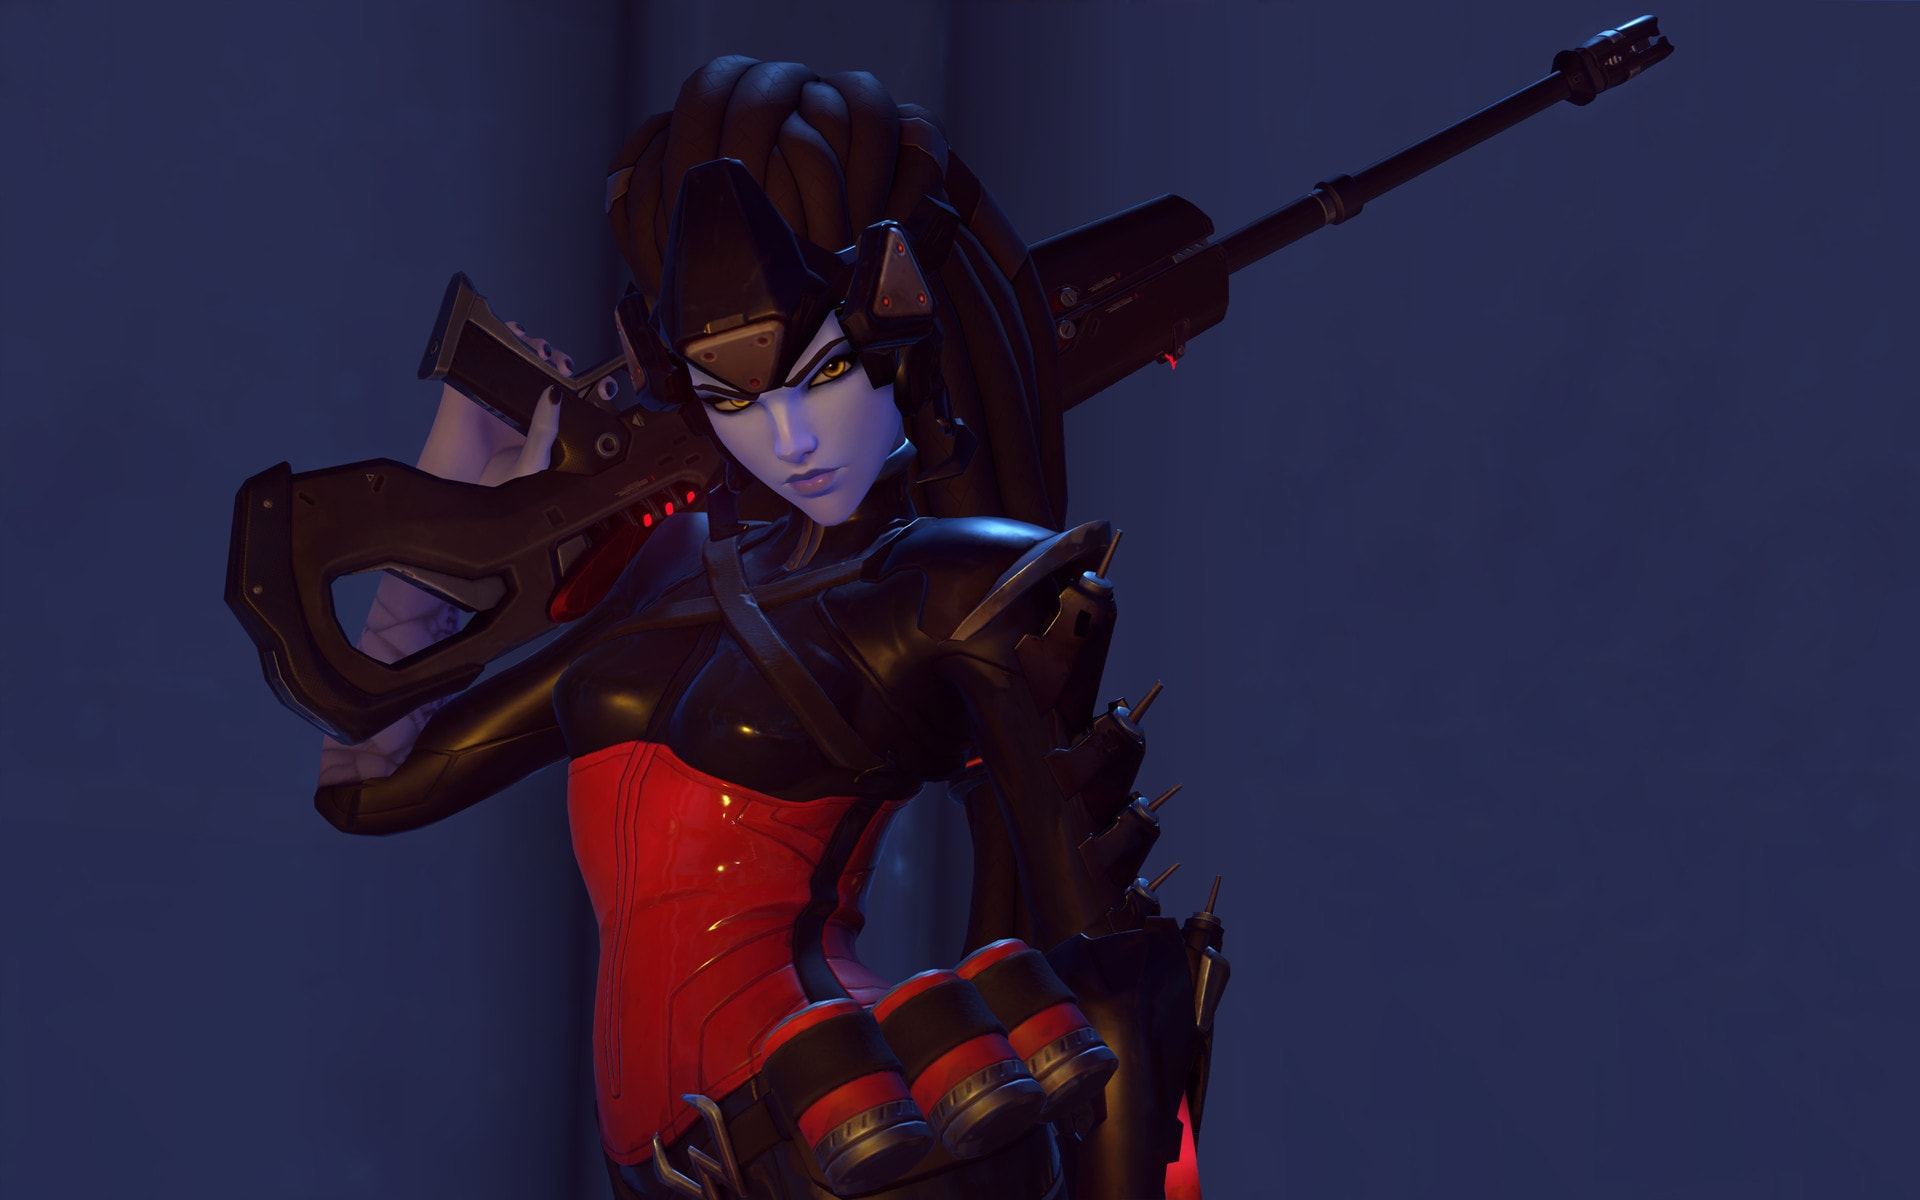 Overwatch : Widowmaker Backgrounds